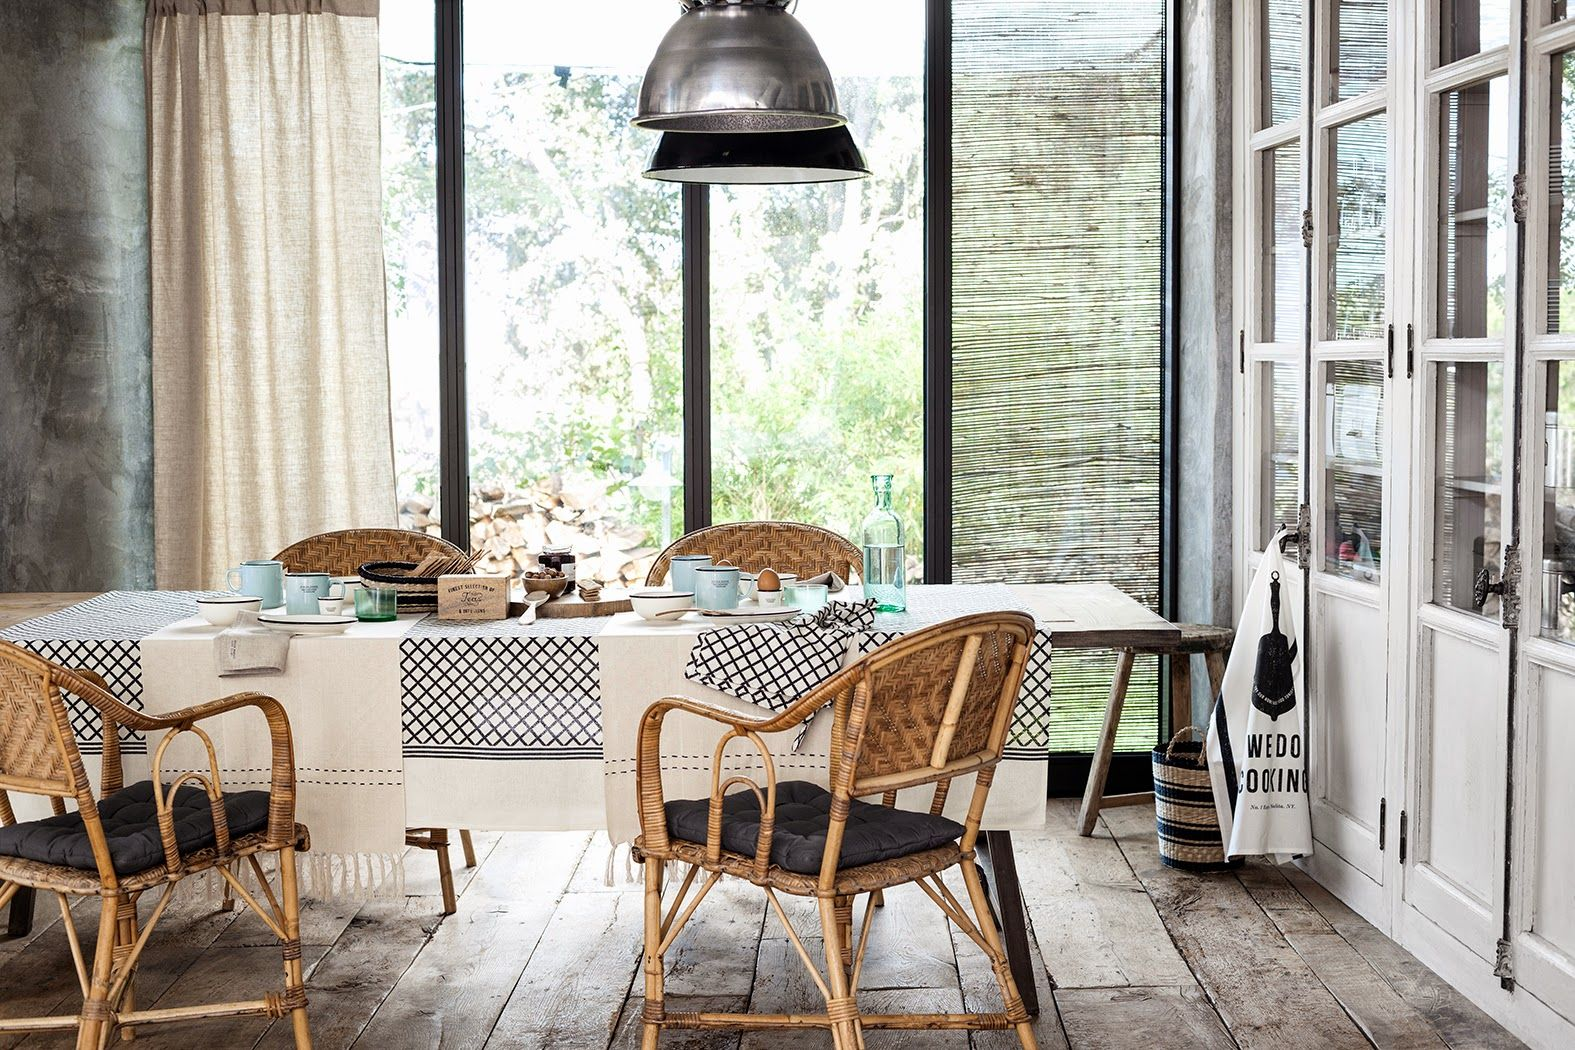 The H & M Home home collection is prepared to welcome spring | Home H Amp M Home Design on swarovski home, gucci home, michael kors home, asda home, walmart home, sony home, next home, armani home, h is for home, chanel home, lane crawford home,